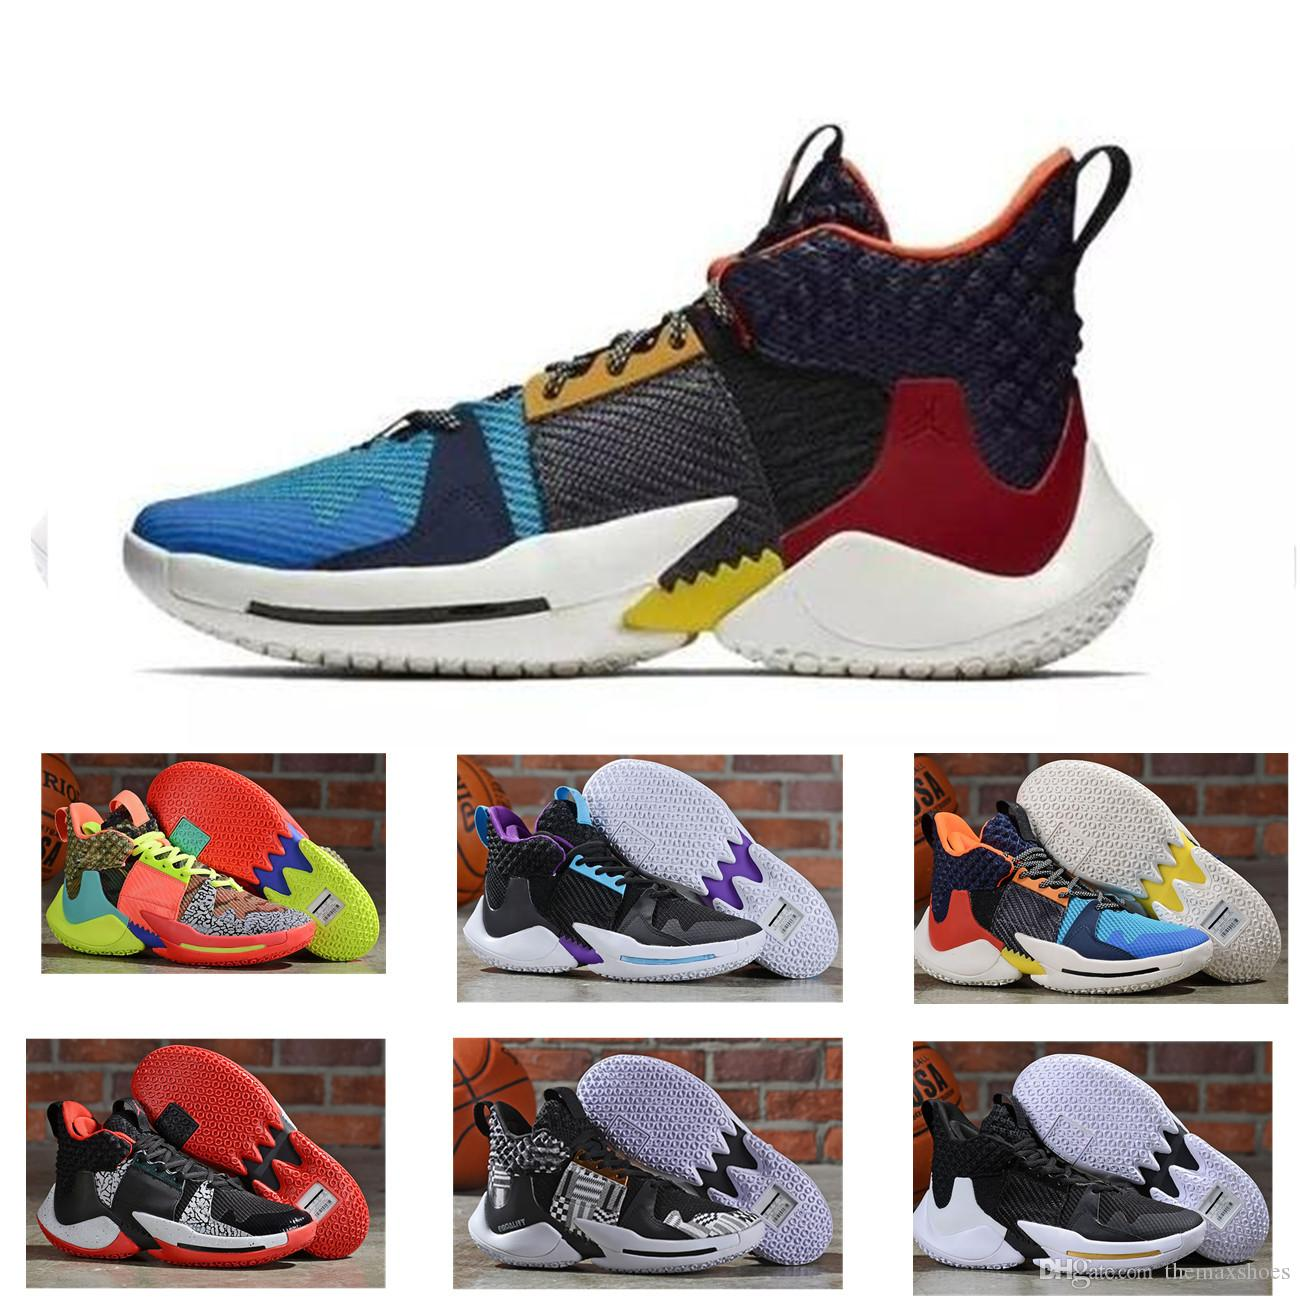 buy popular ff92a 5c27e Why Not Zer0.2 Russell Westbrook 0.3 2.0 II Mirror Image 2019 Sports Basketball  Shoes Two Mens Zero.2 One Sports Athletic Sneakers 40 46 Basketball Mens ...